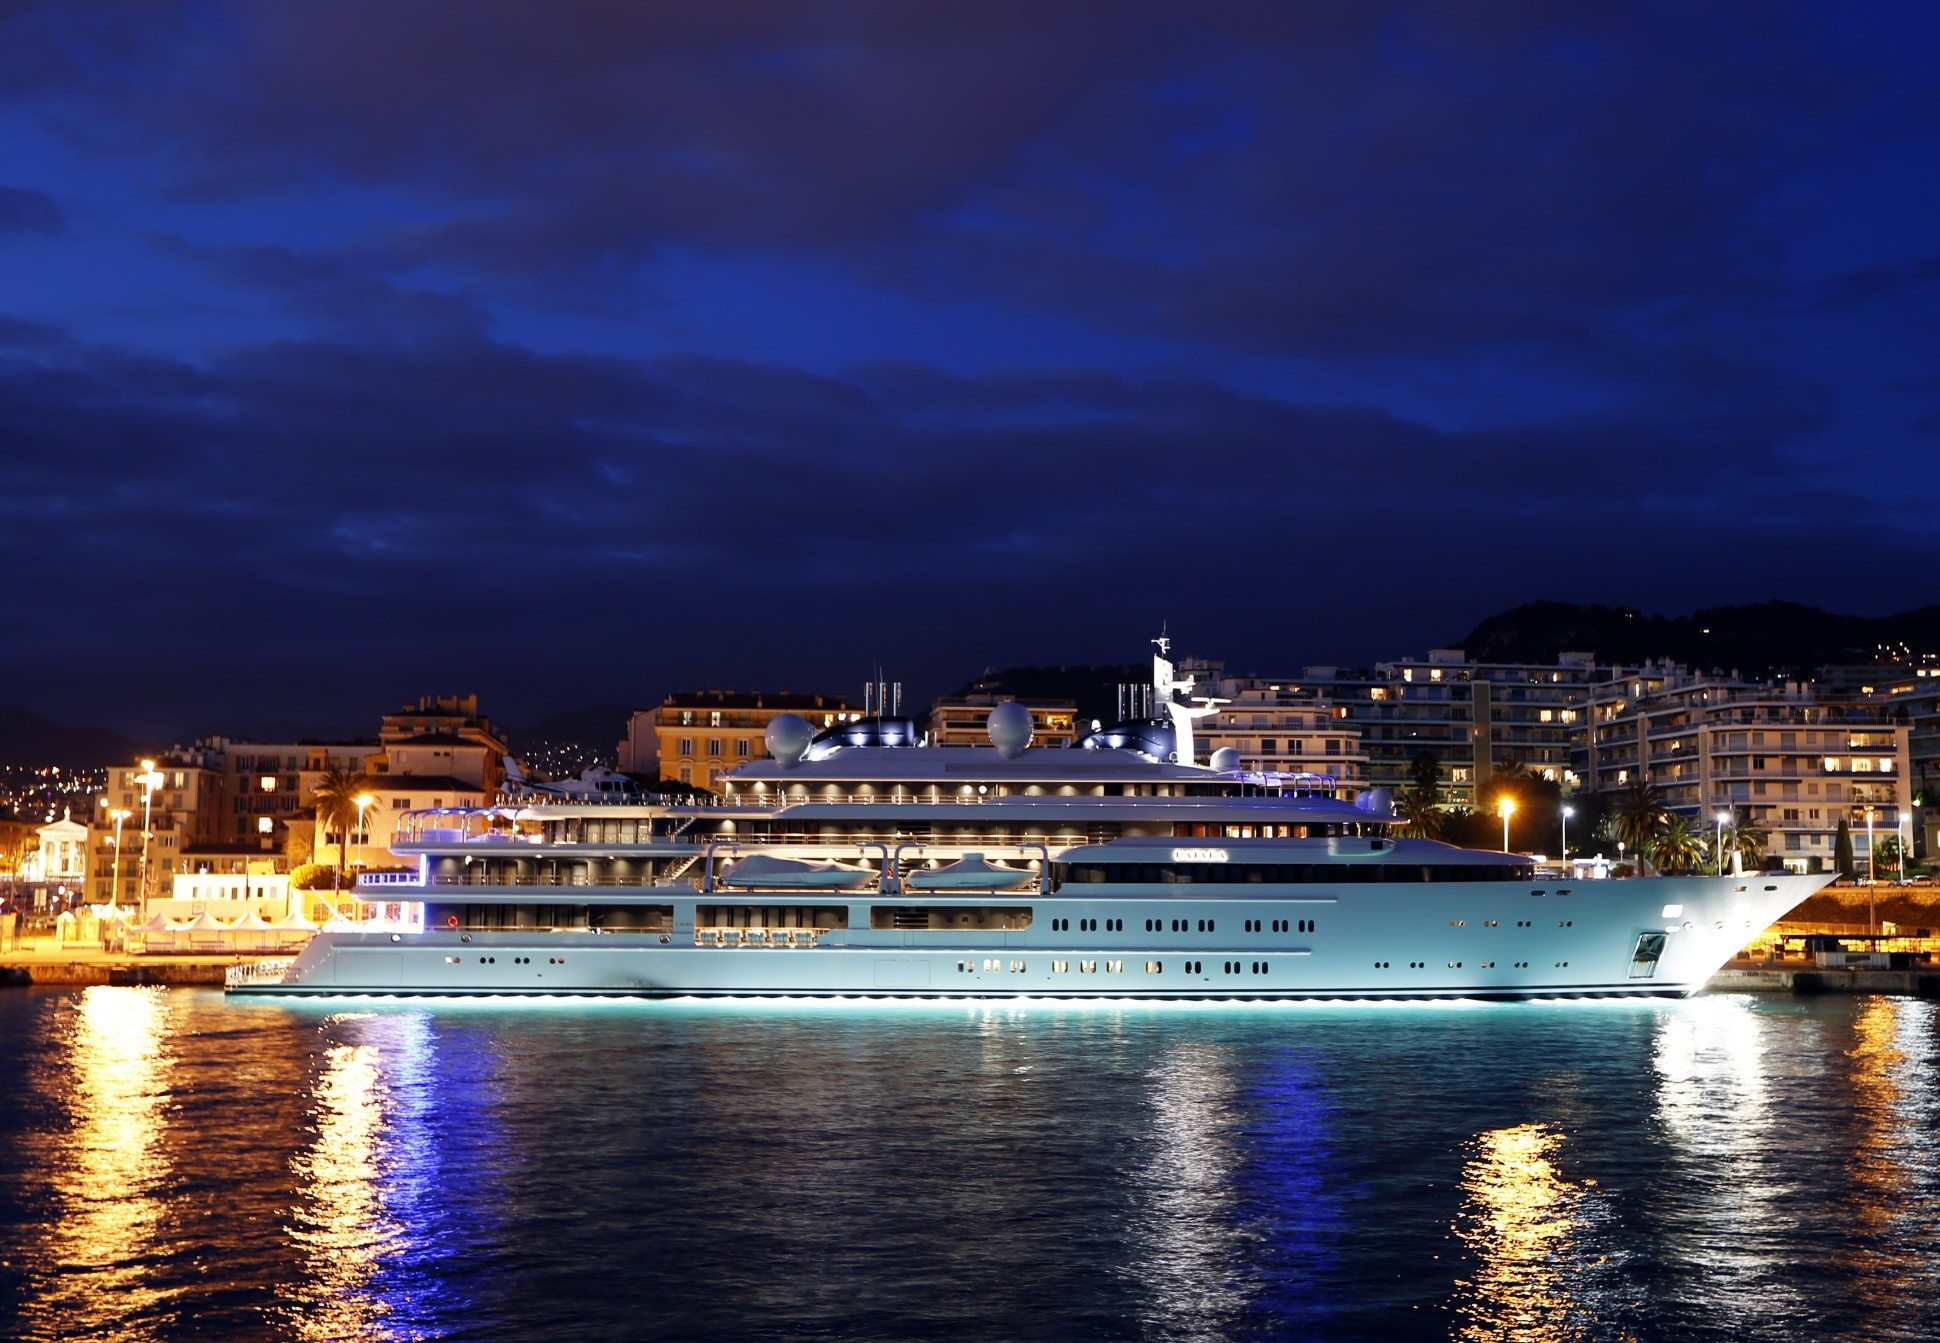 The Katara, a 124 meter superyacht owned by the emir of Qatar, docked in Nice's harbor. (Valery Hache/AFP Photo/Getty)